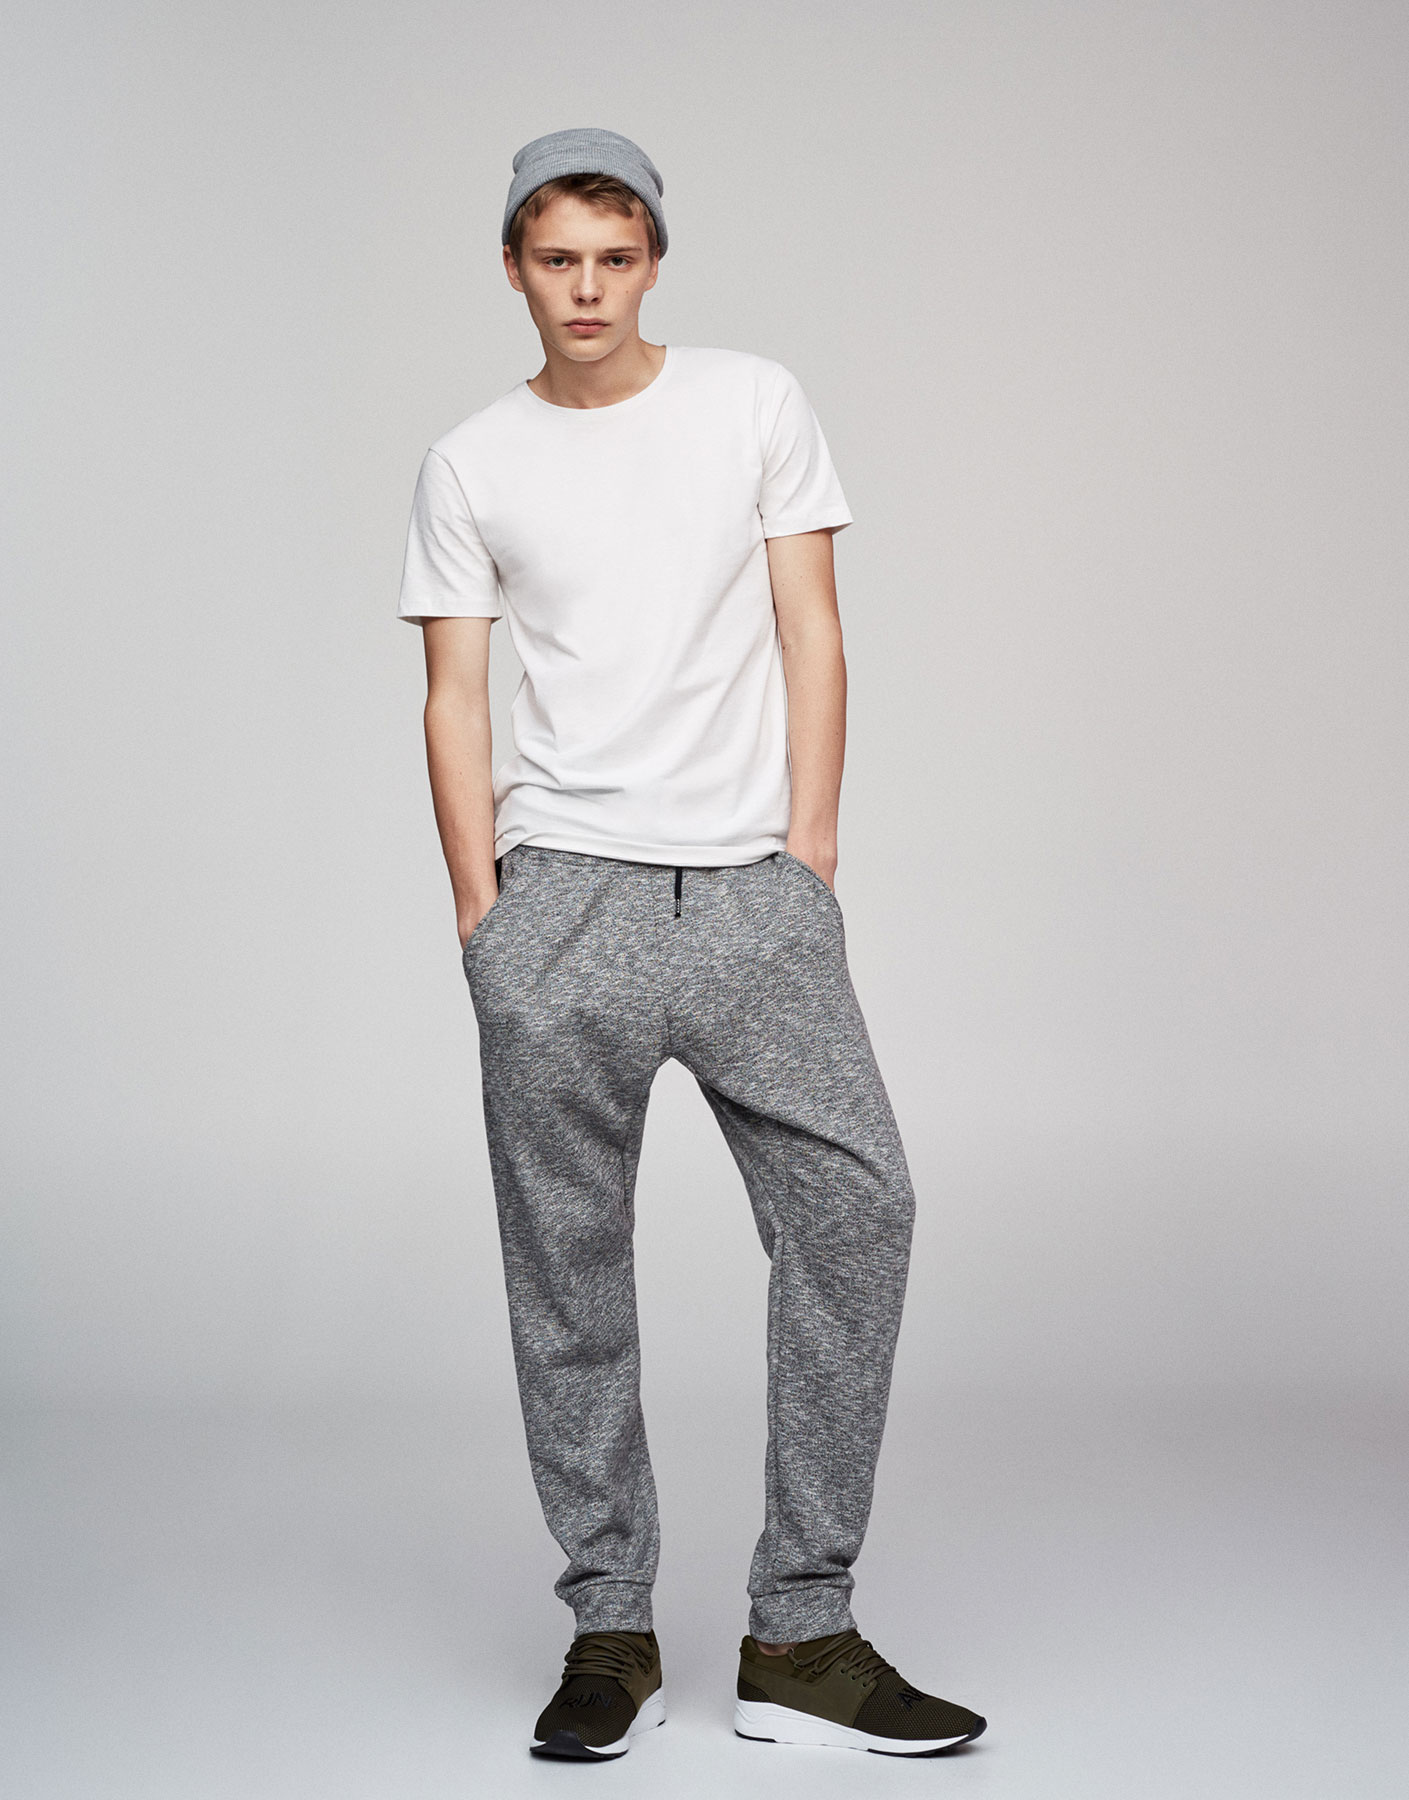 Baggy grey jogging trousers